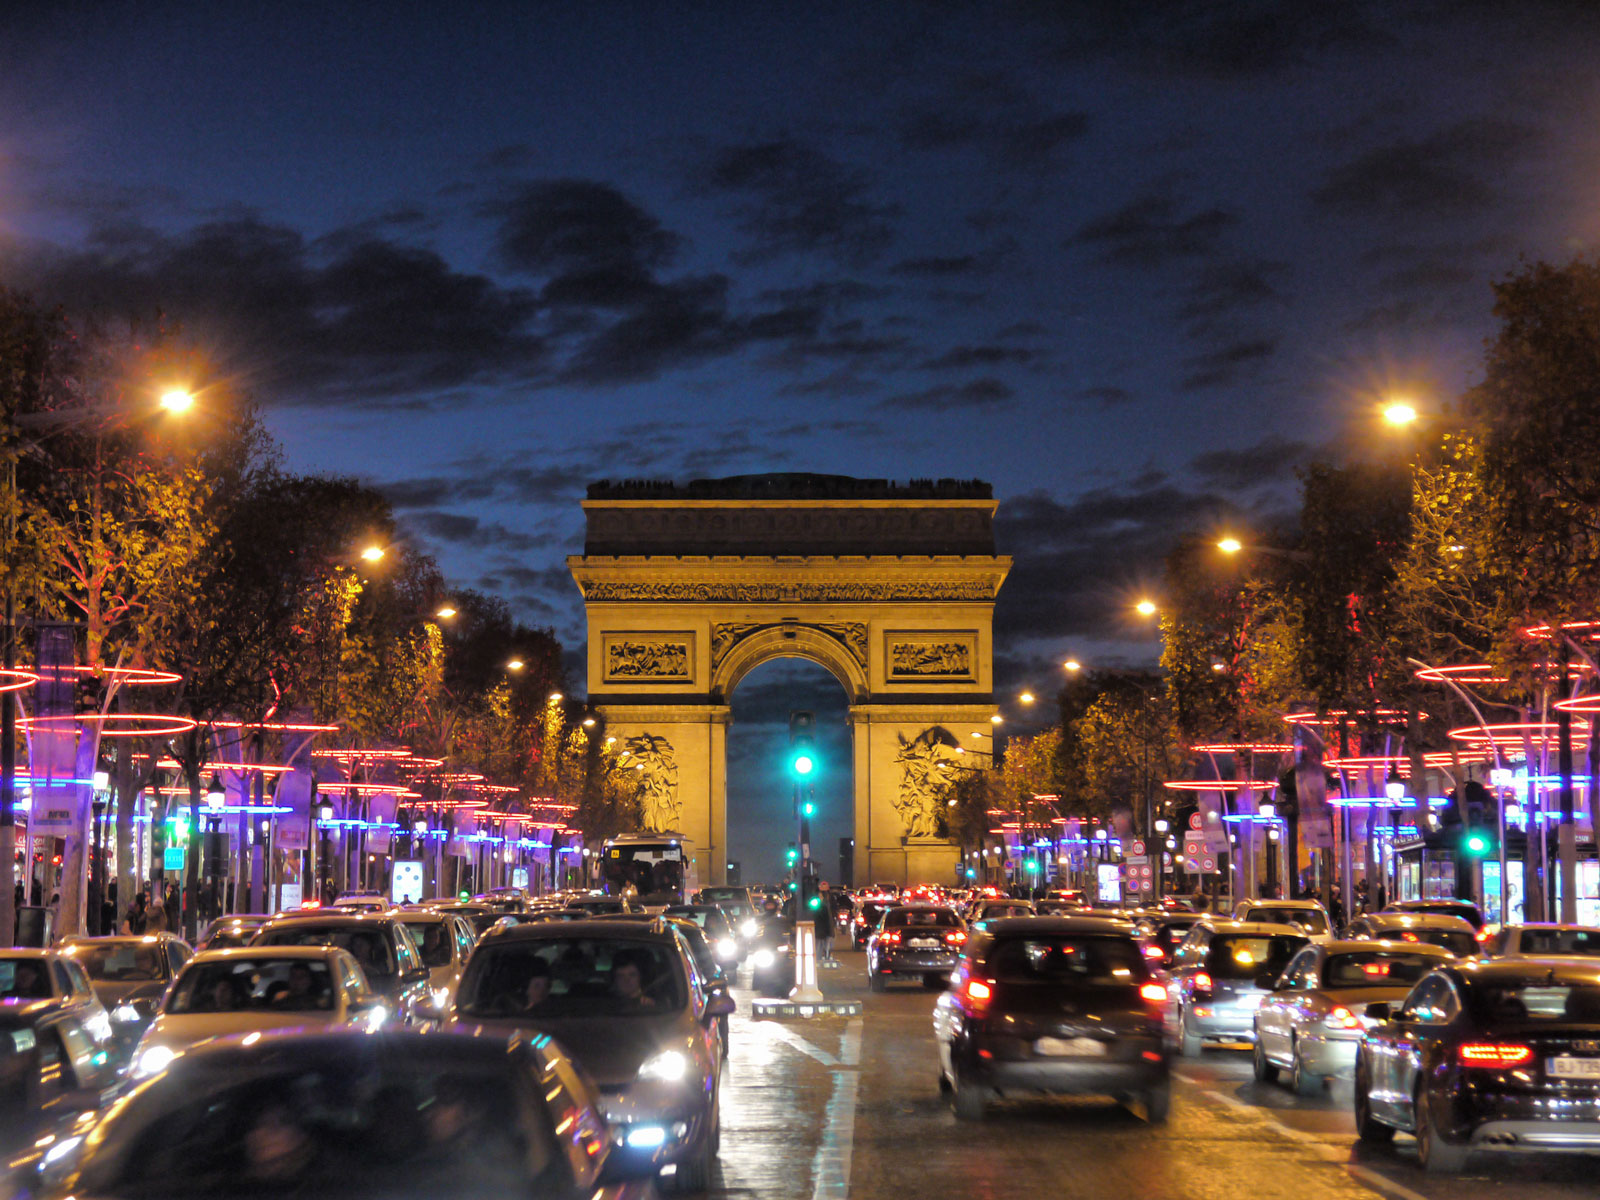 An Evening on Champs-Élysées: Arc de Triomphe at Dusk - Paris, France